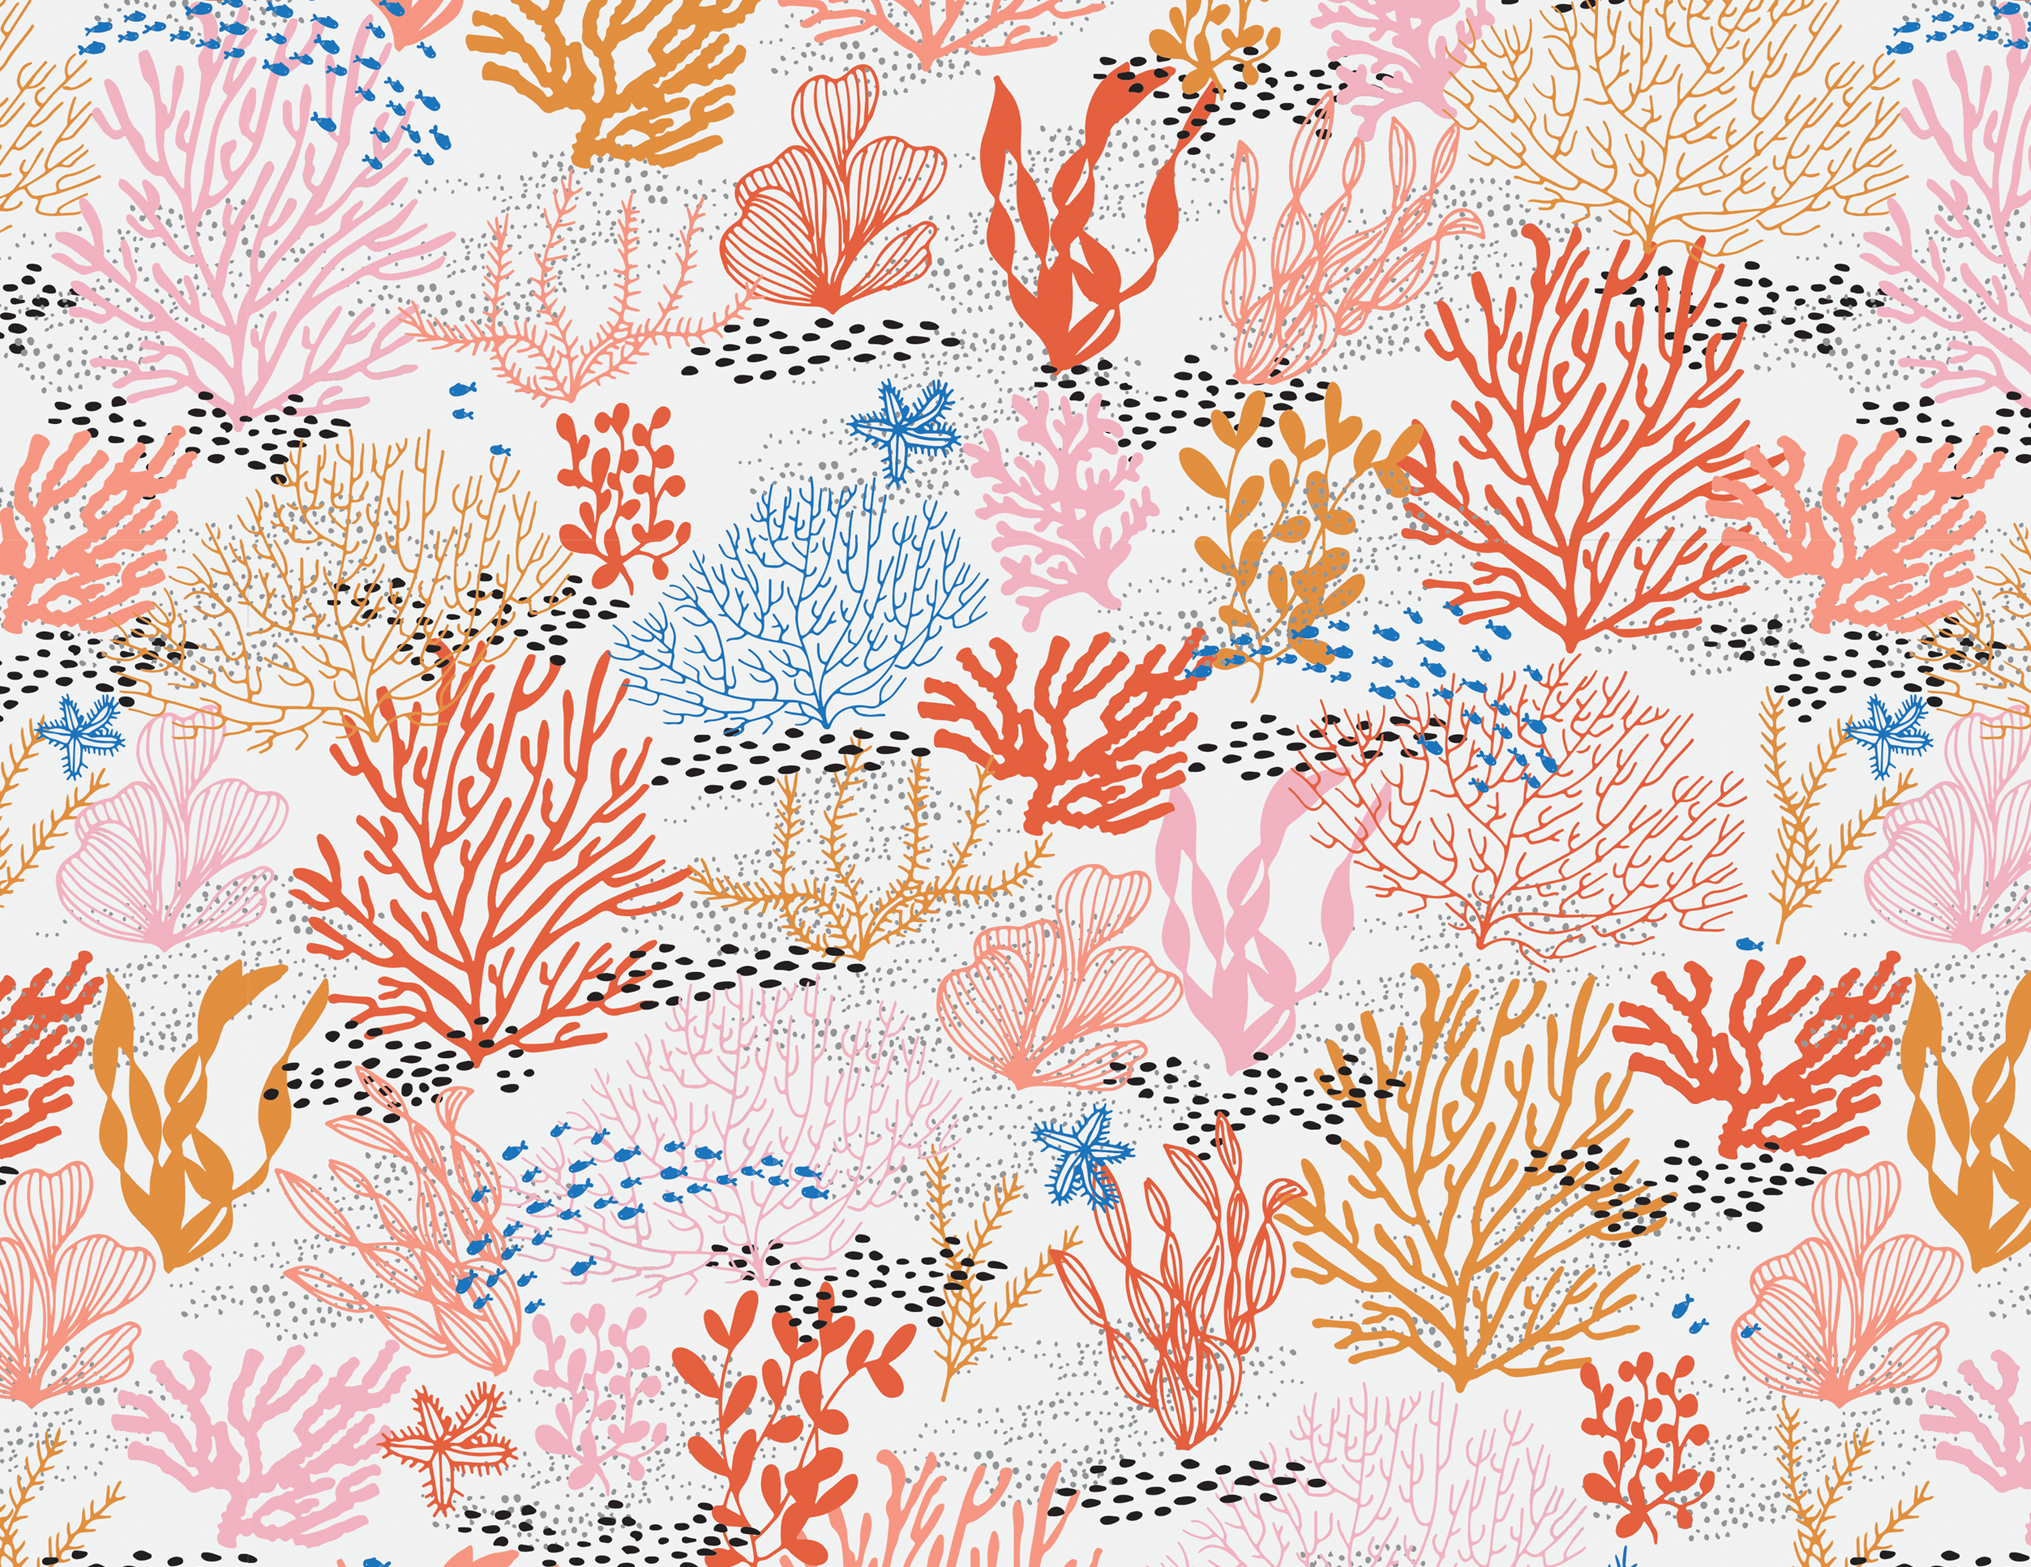 Coral Reef Seamless Pattern Repeating Pattern Design Reef Pattern Seamless Patterns